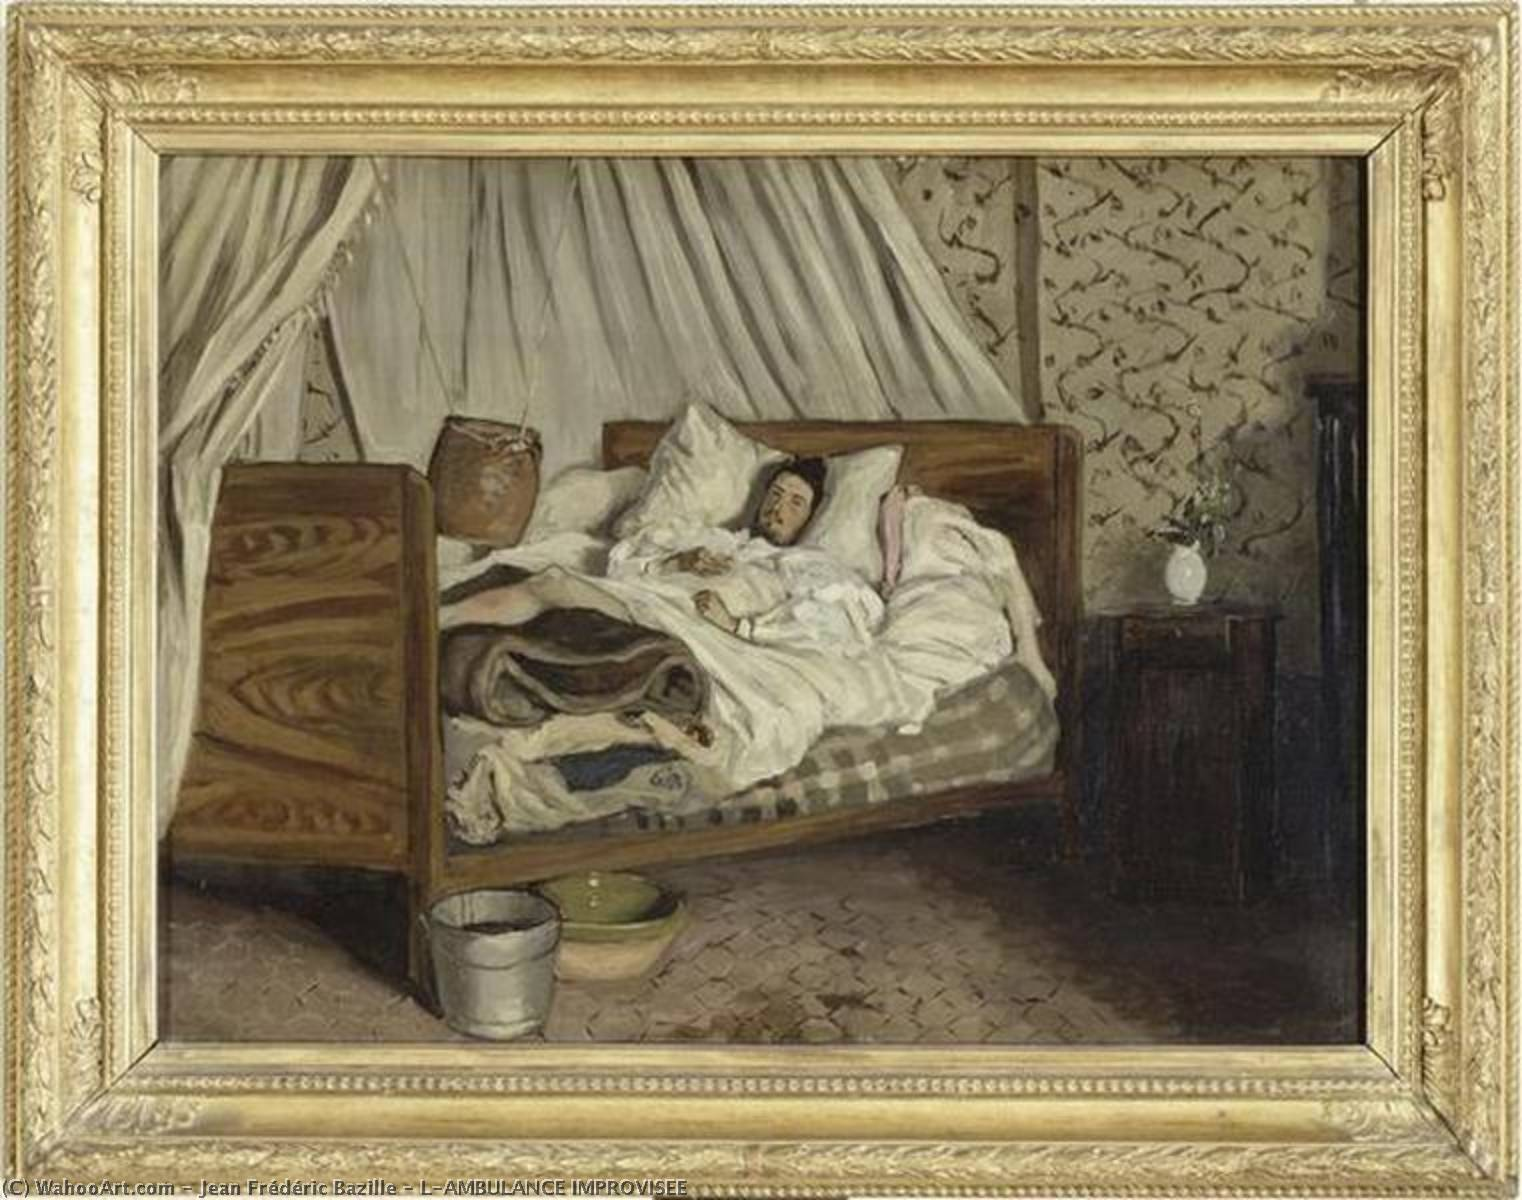 famous painting L'AMBULANCE IMPROVISÉE of Jean Frederic Bazille